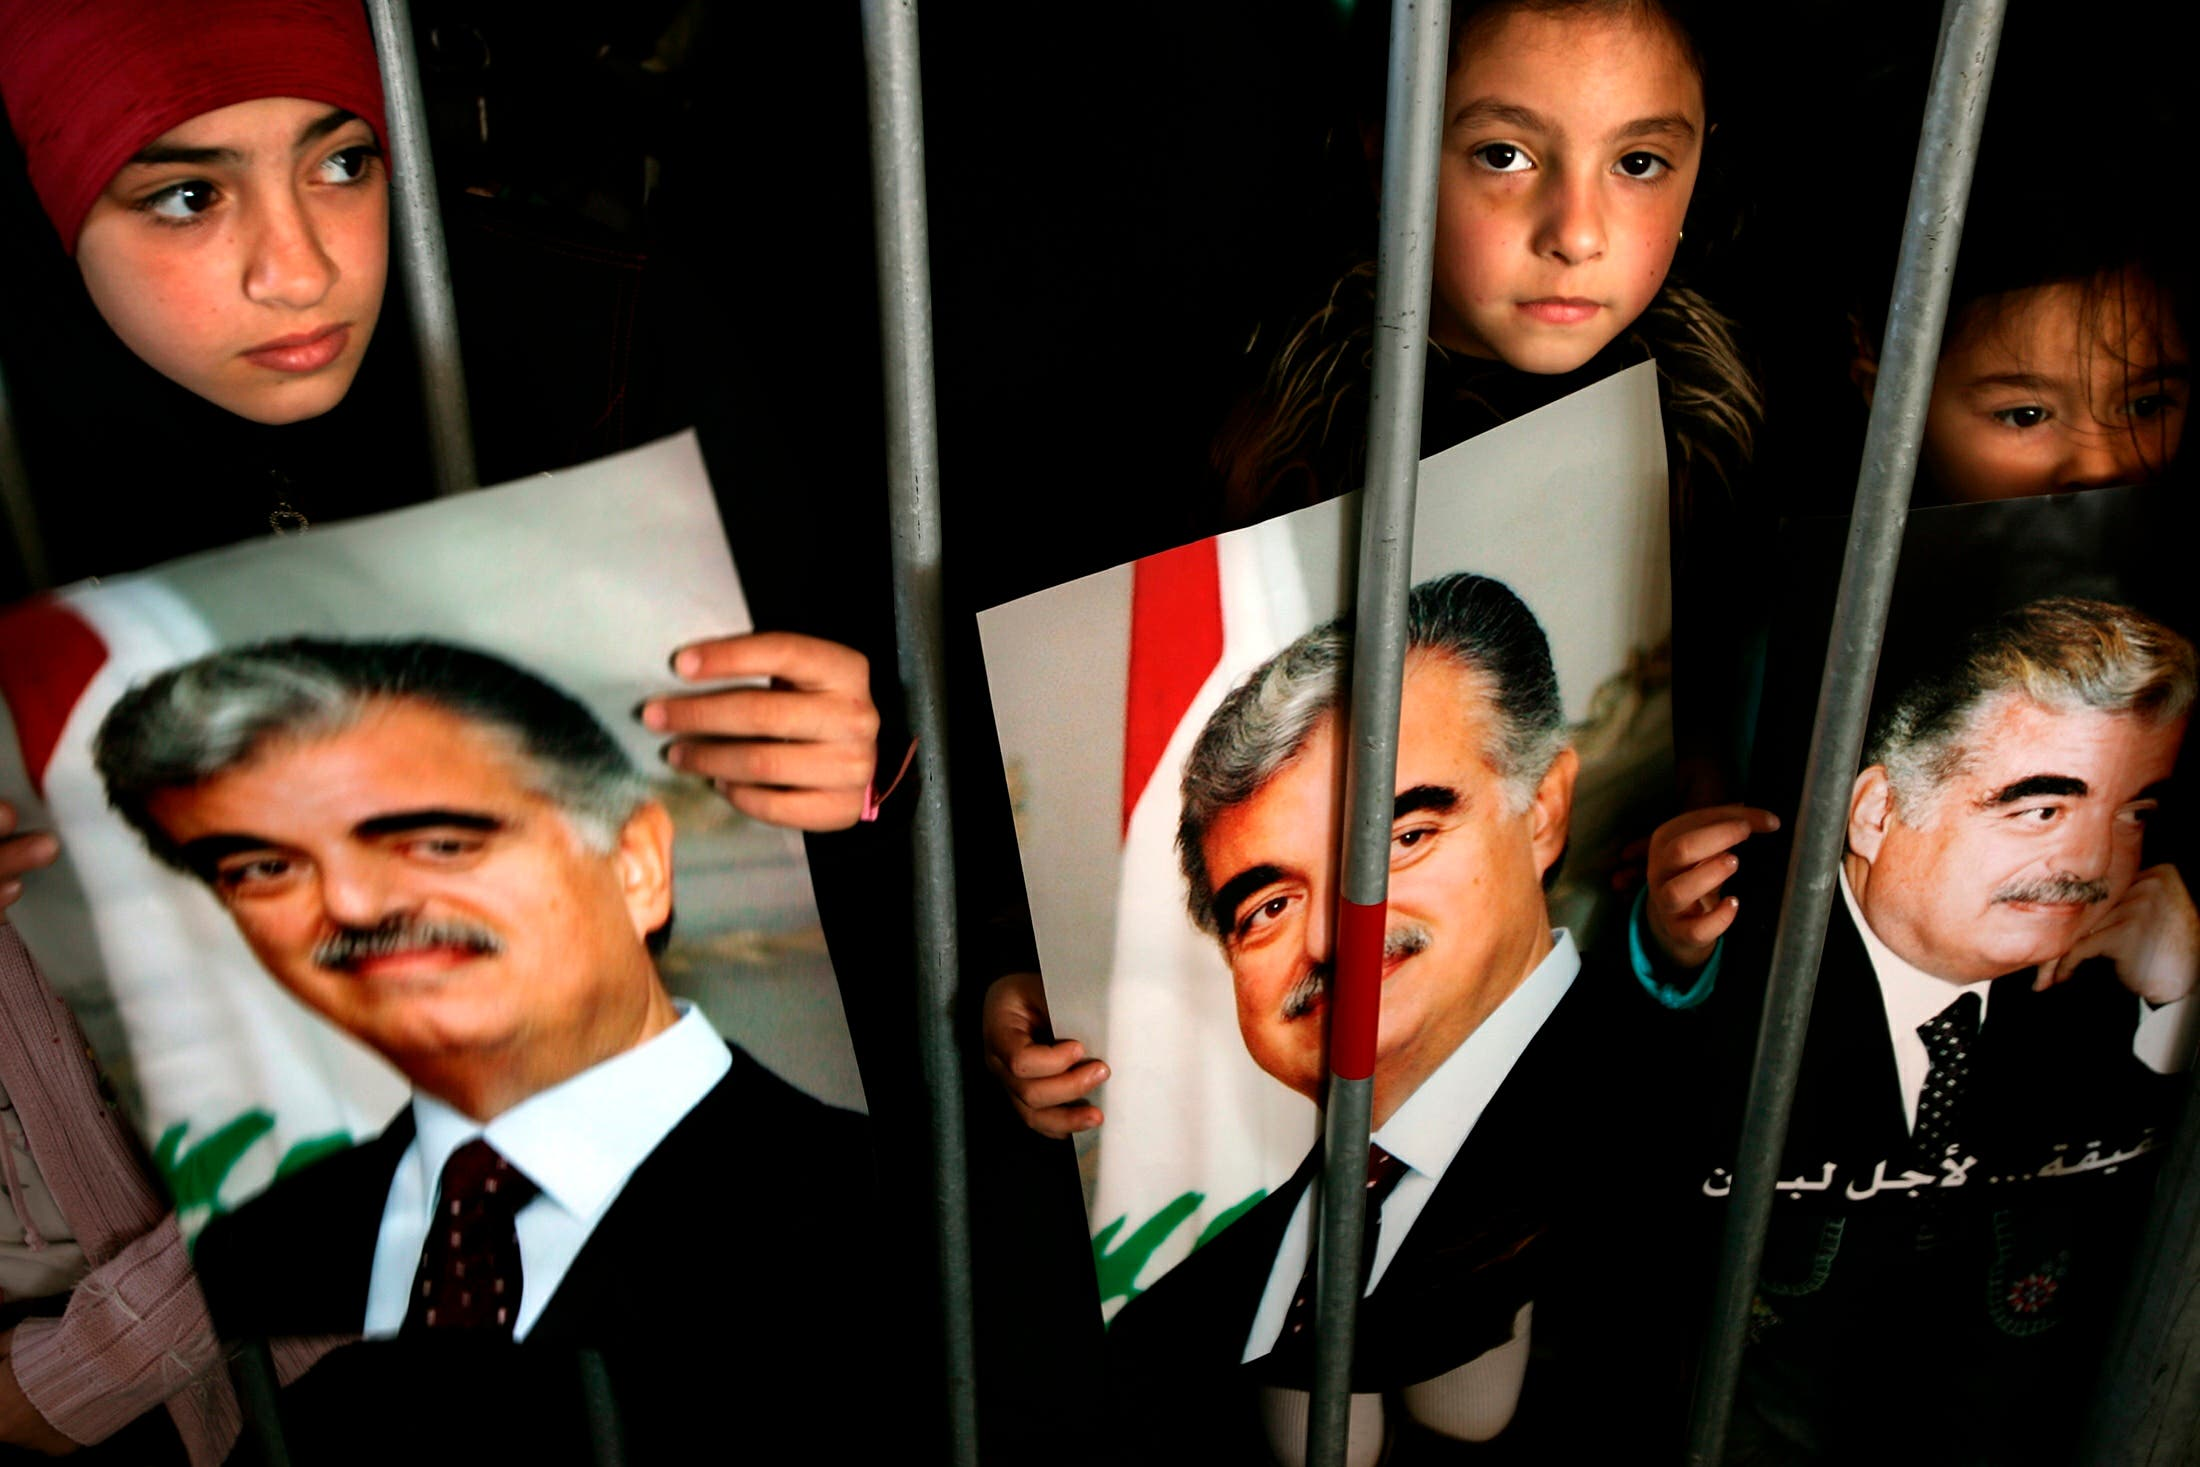 Lebanese Muslim girls hold pictures of former Prime Minister Rafik al-Hariri as they visit his grave in Beirut's Martyrs Square. (Reuters)